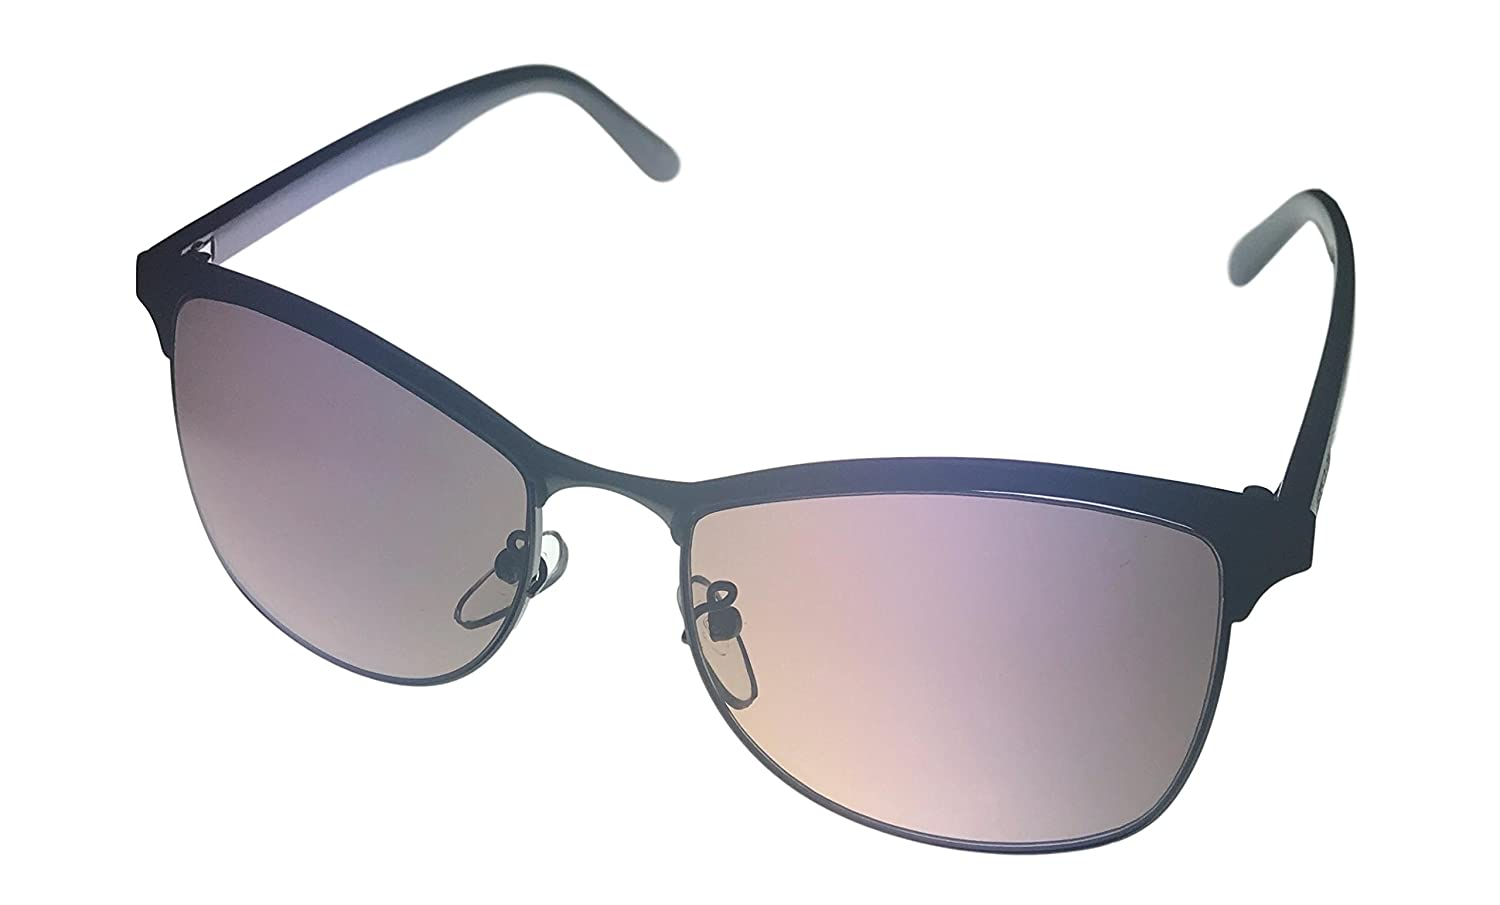 Amazon.com: Kenneth Cole REACTION KC1217 50F - Gafas de sol ...